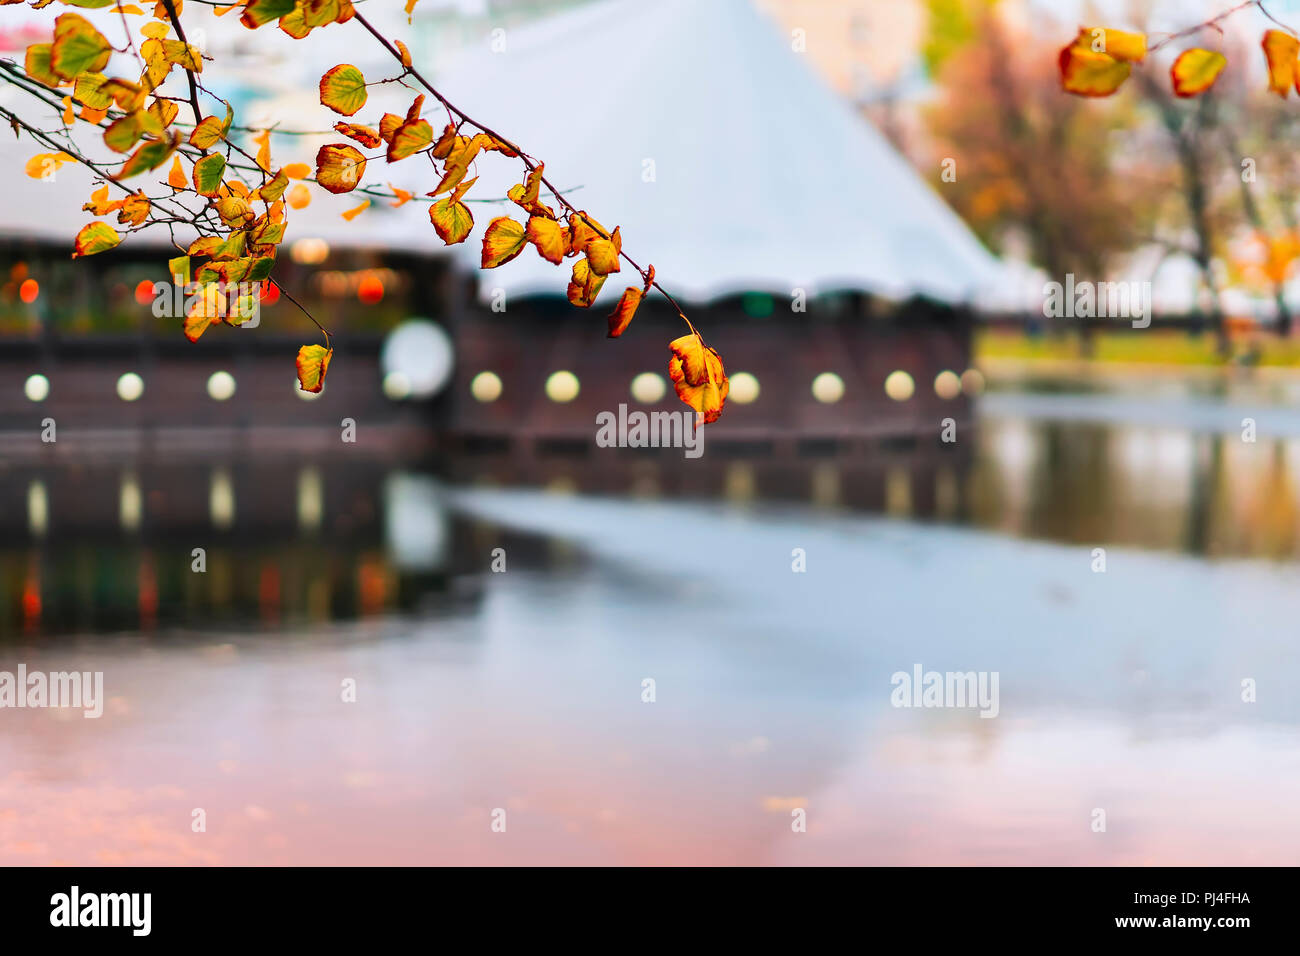 Colorful branch with leaves in autumn over blue water, bright reflections in water, architectural tented buildings in the park. Romantic mood, concept of nostalgia. Natural blurred background - Stock Image